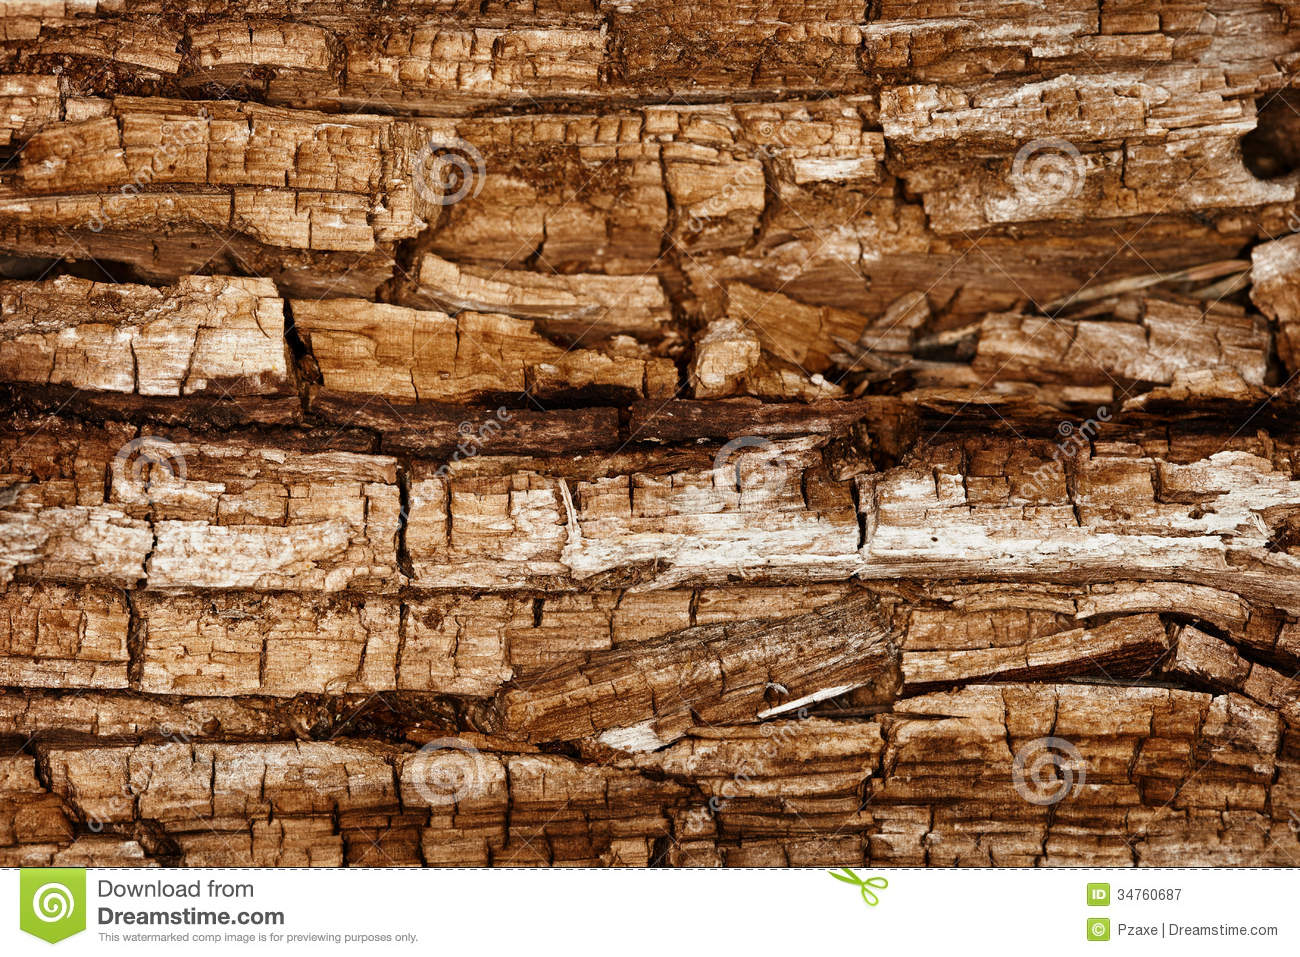 Completely Rotted Wood Royalty Free Stock Photography - Image ...: dreamstime.com/royalty-free-stock-photography-completely-rotted...